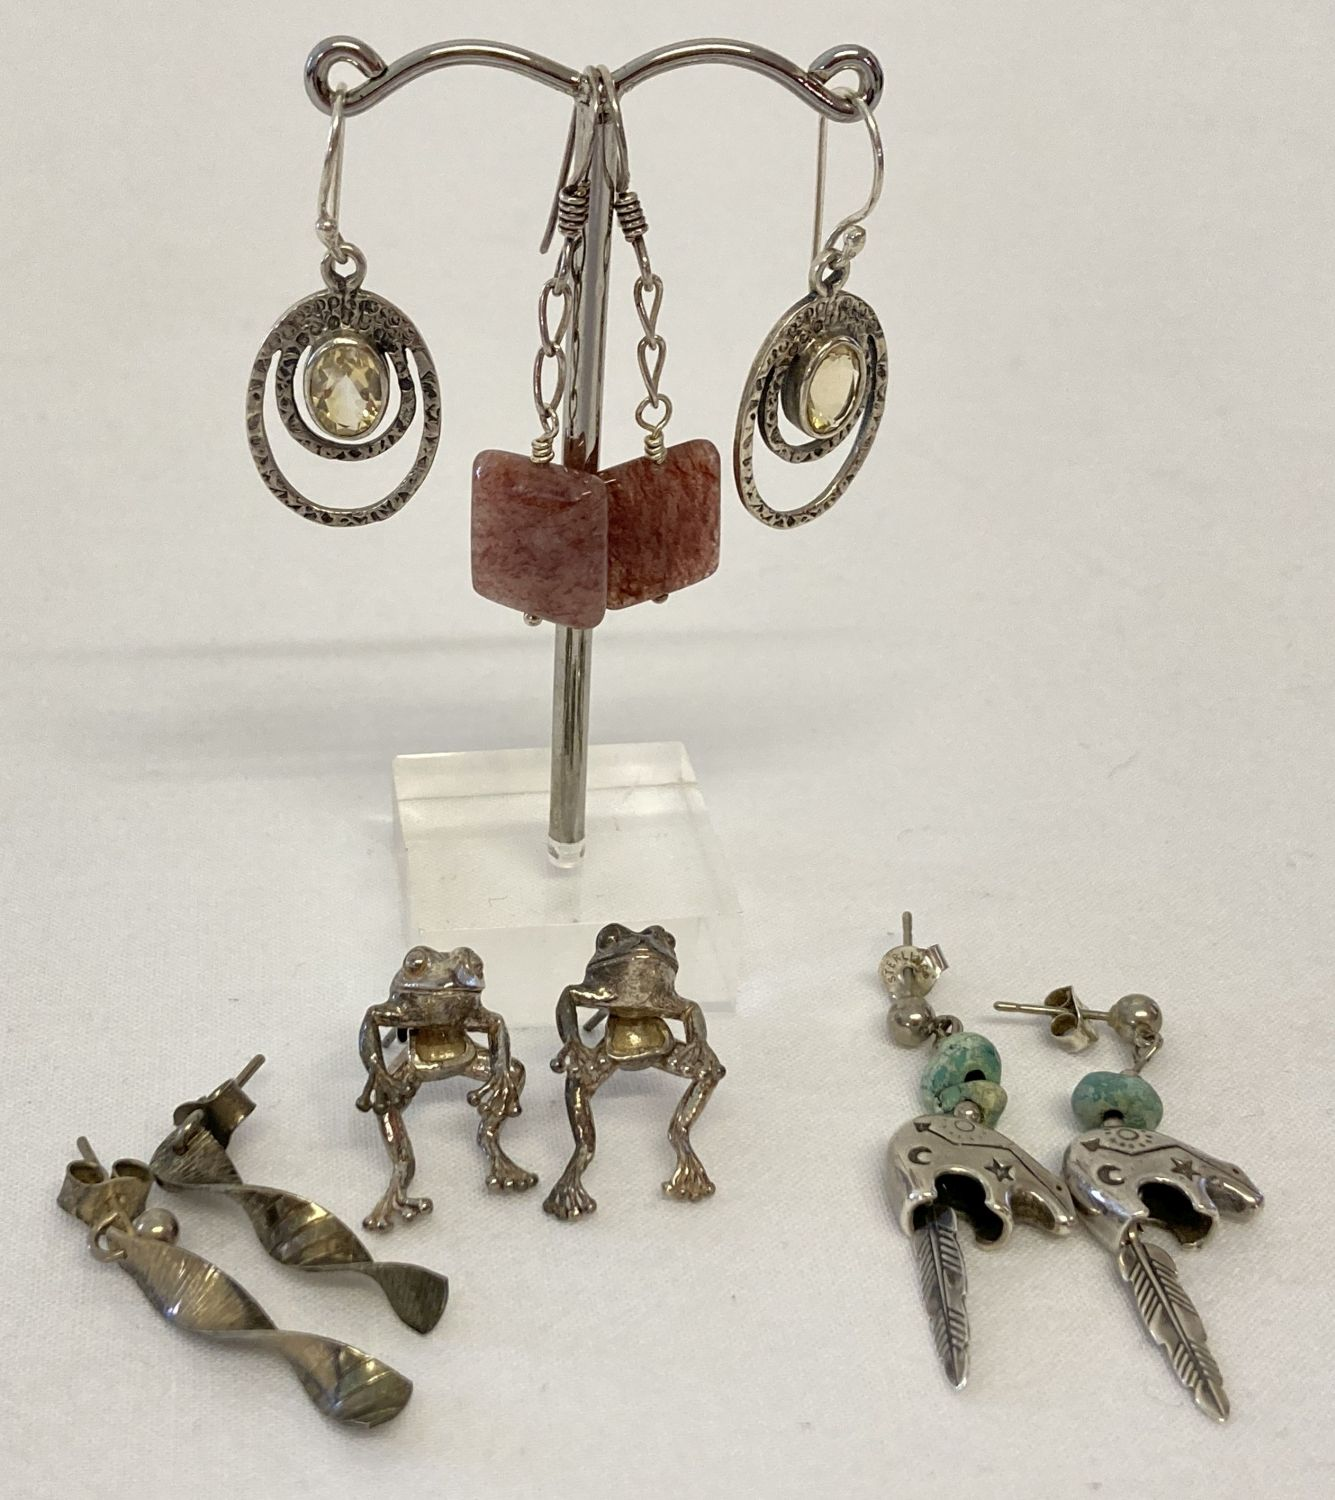 5 pairs of silver and white metal earrings, all in a drop style. To include stone set and frogs.